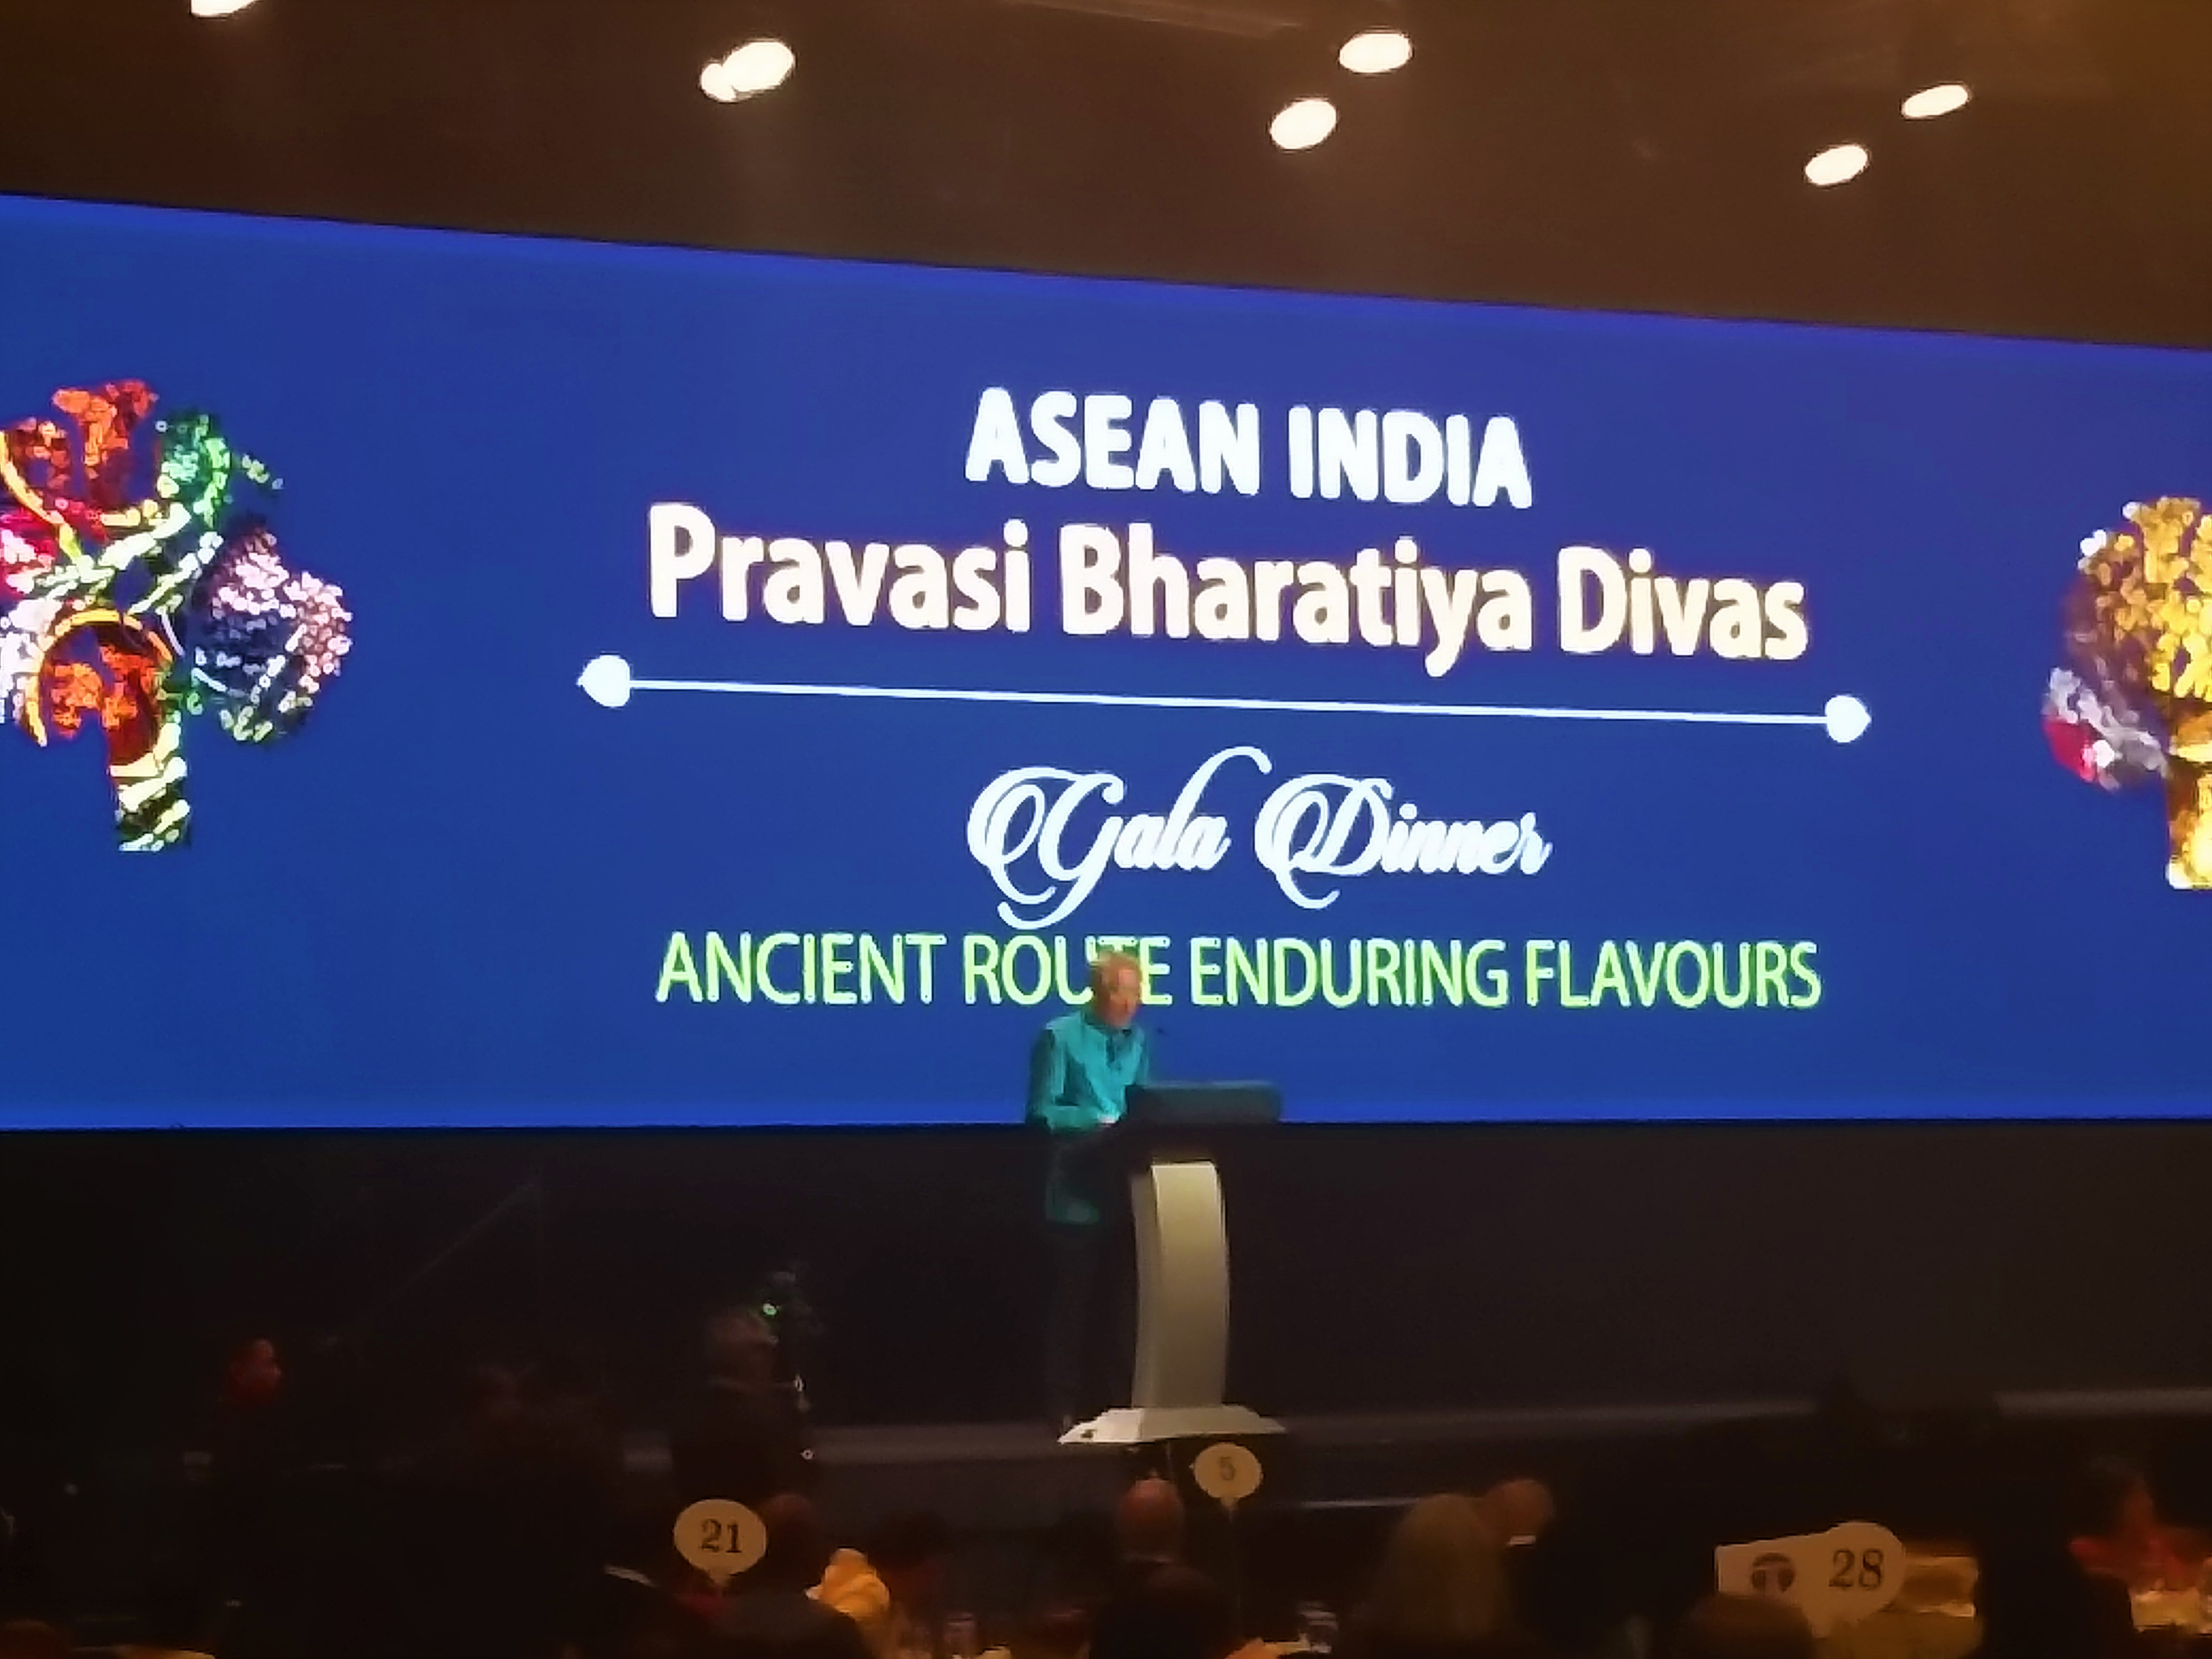 Singapore Deputy Prime Minister Teo Chee Hean addresses a gathering of Indian diaspora during the gala dinner at the ASEAN India Pravasi Bharatiya Divas.